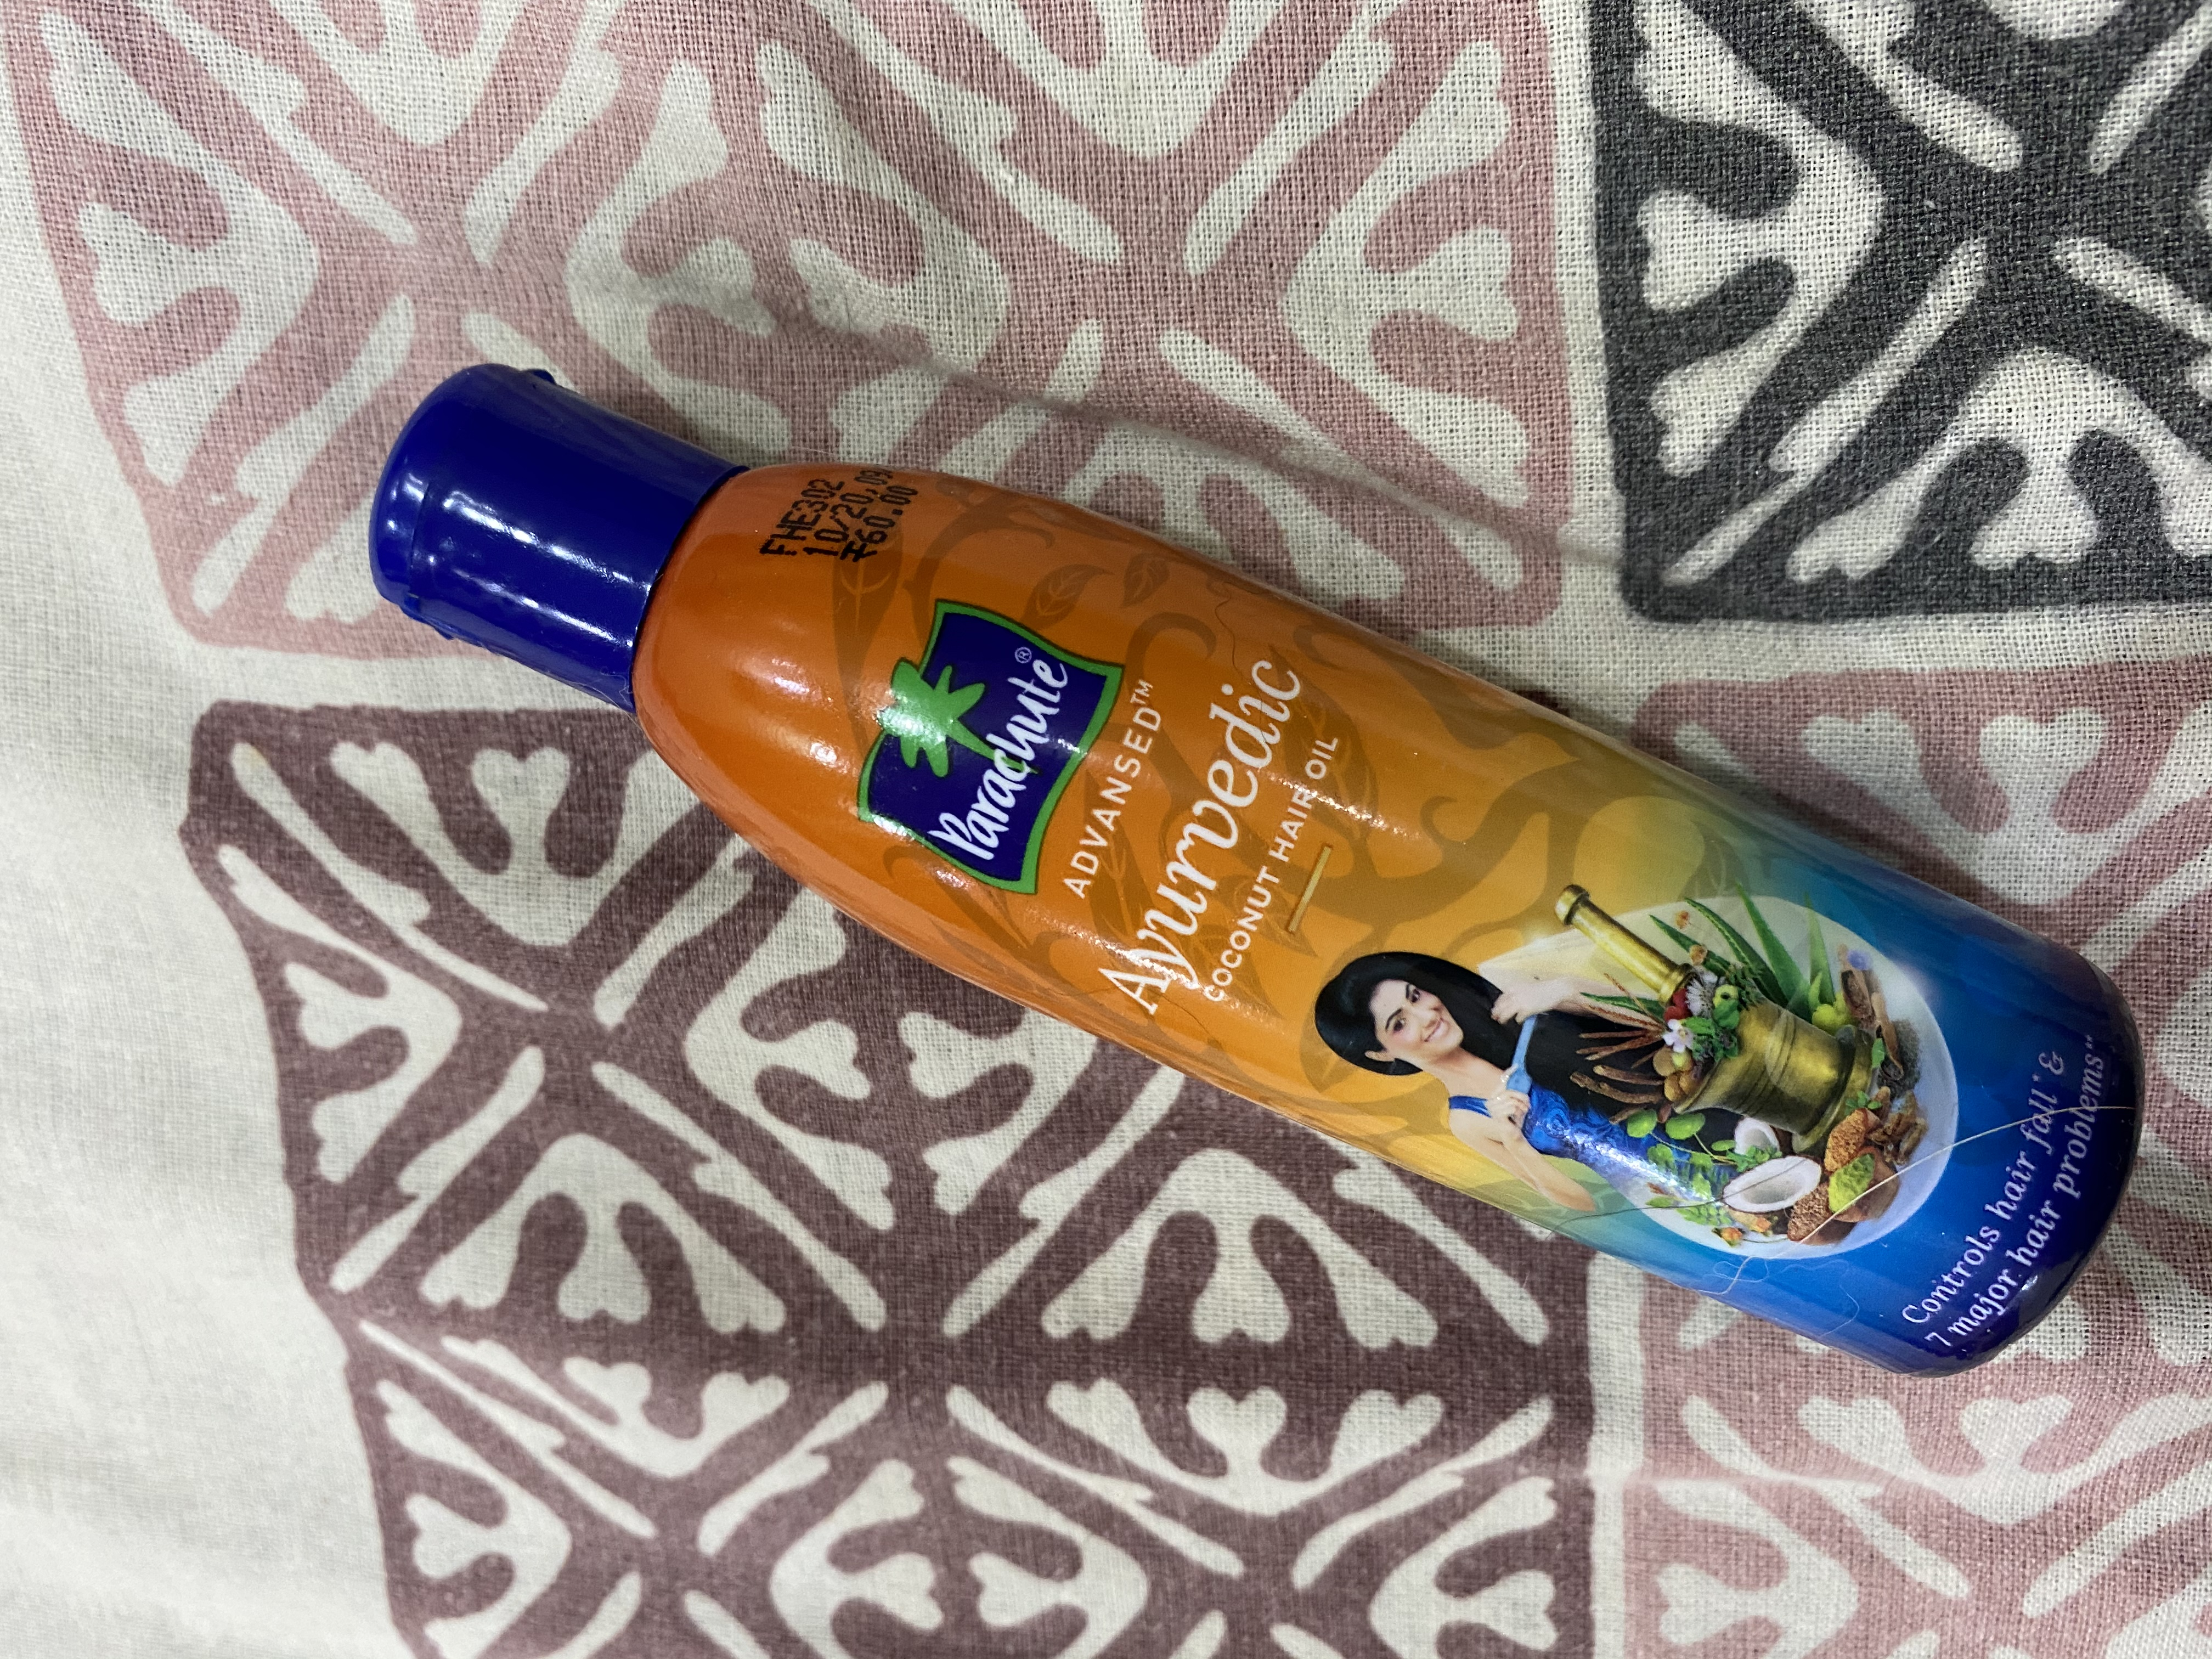 Parachute Advansed Ayurvedic Coconut Hair Oil pic 1-One of the best oil-By the_beauty_bets